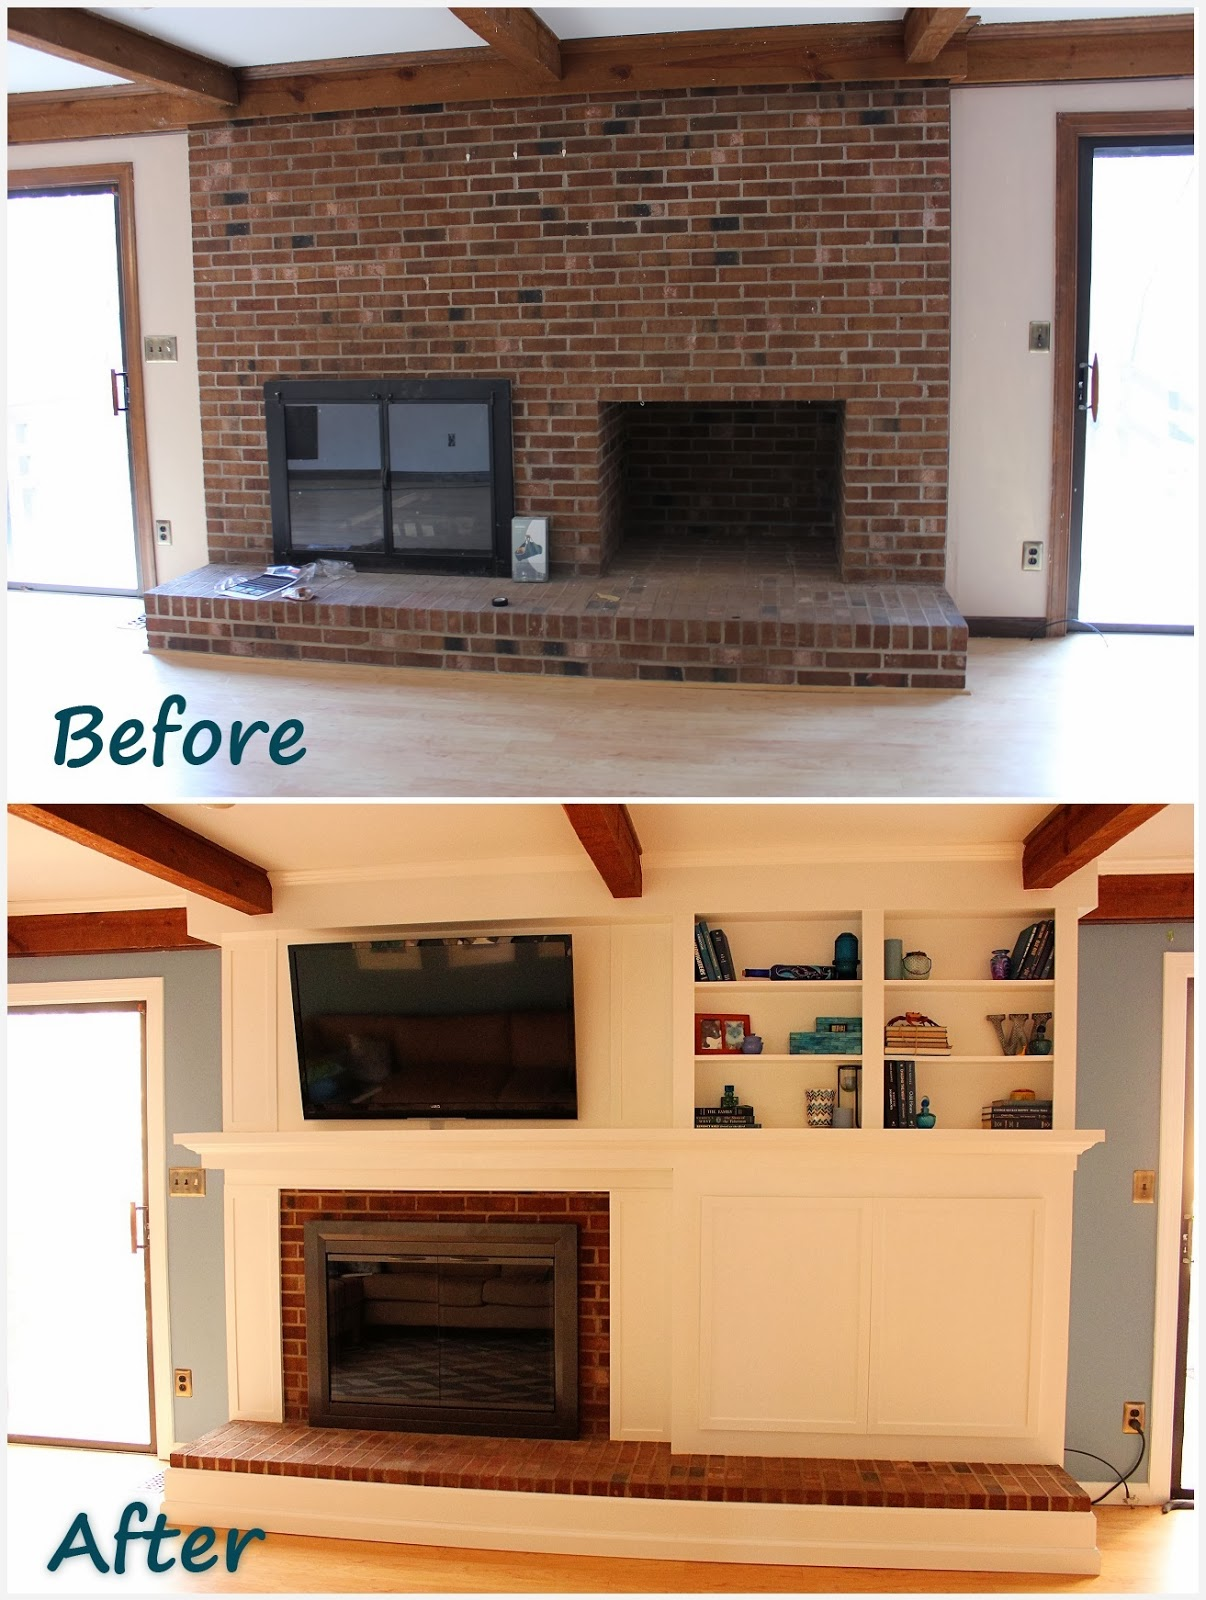 The Handcrafted Life The Finale to Building a Fireplace Facade Covering the Brick Adding